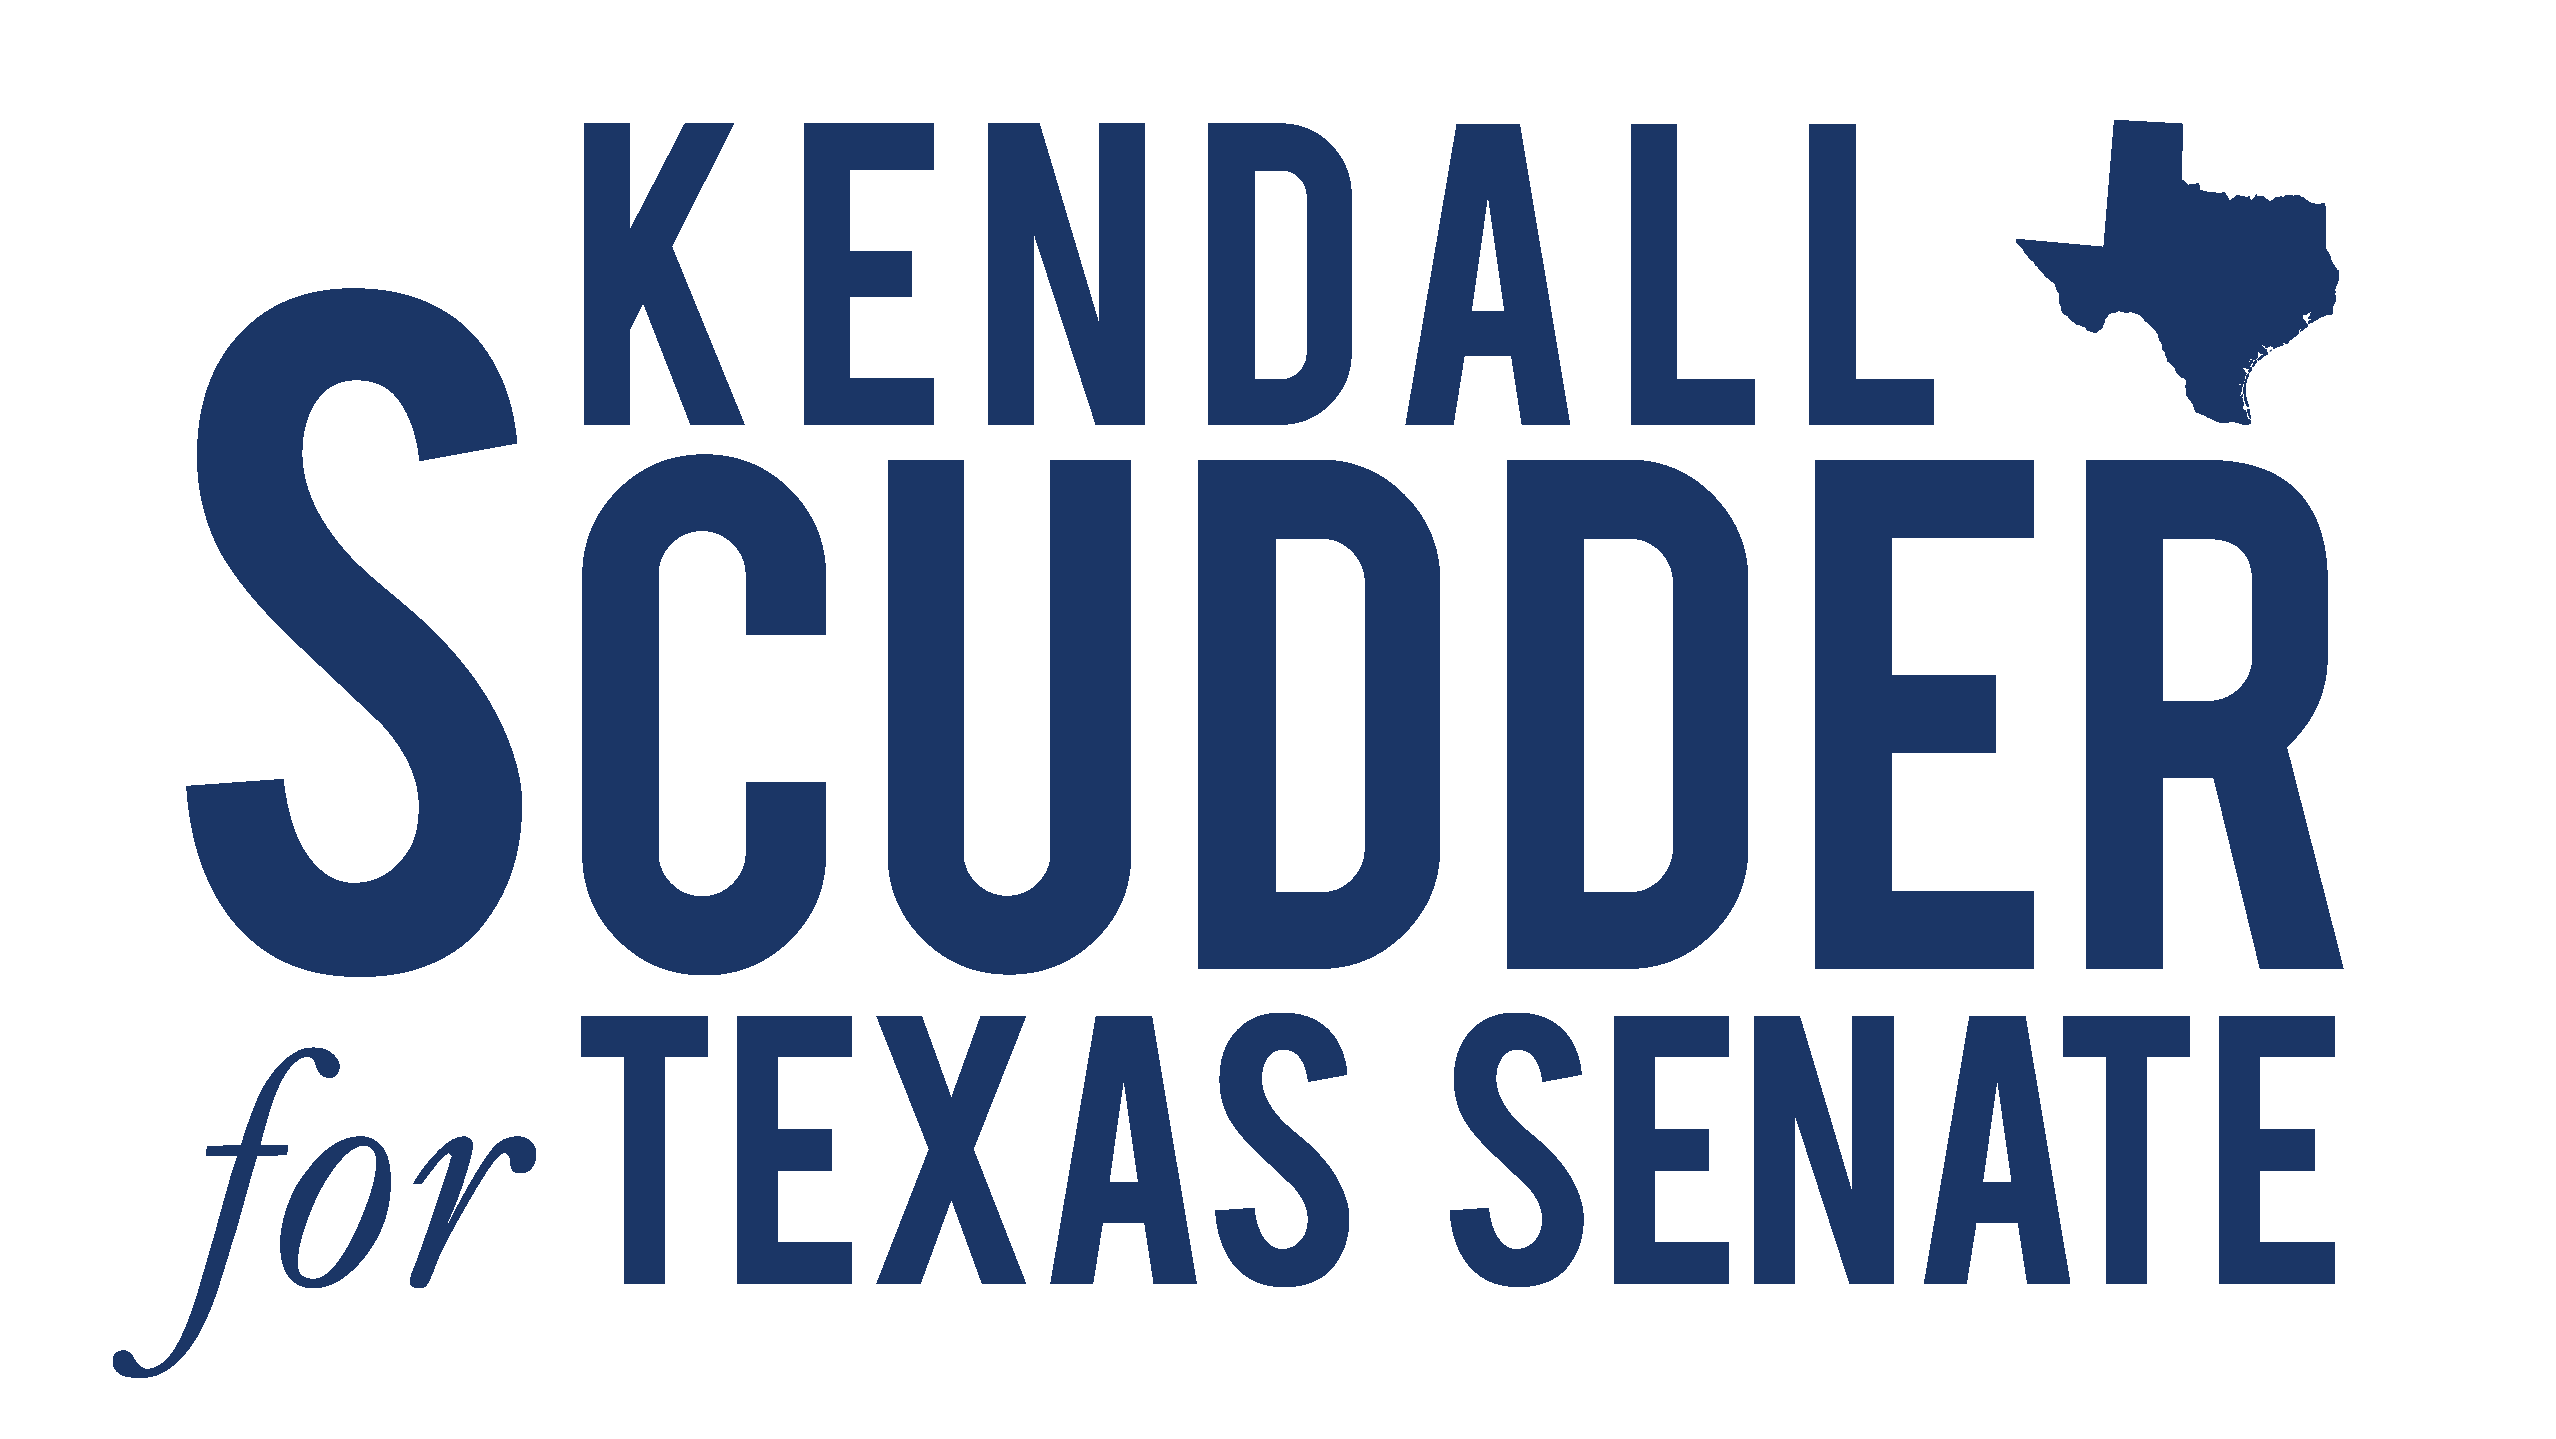 Kendall Scudder Campaign